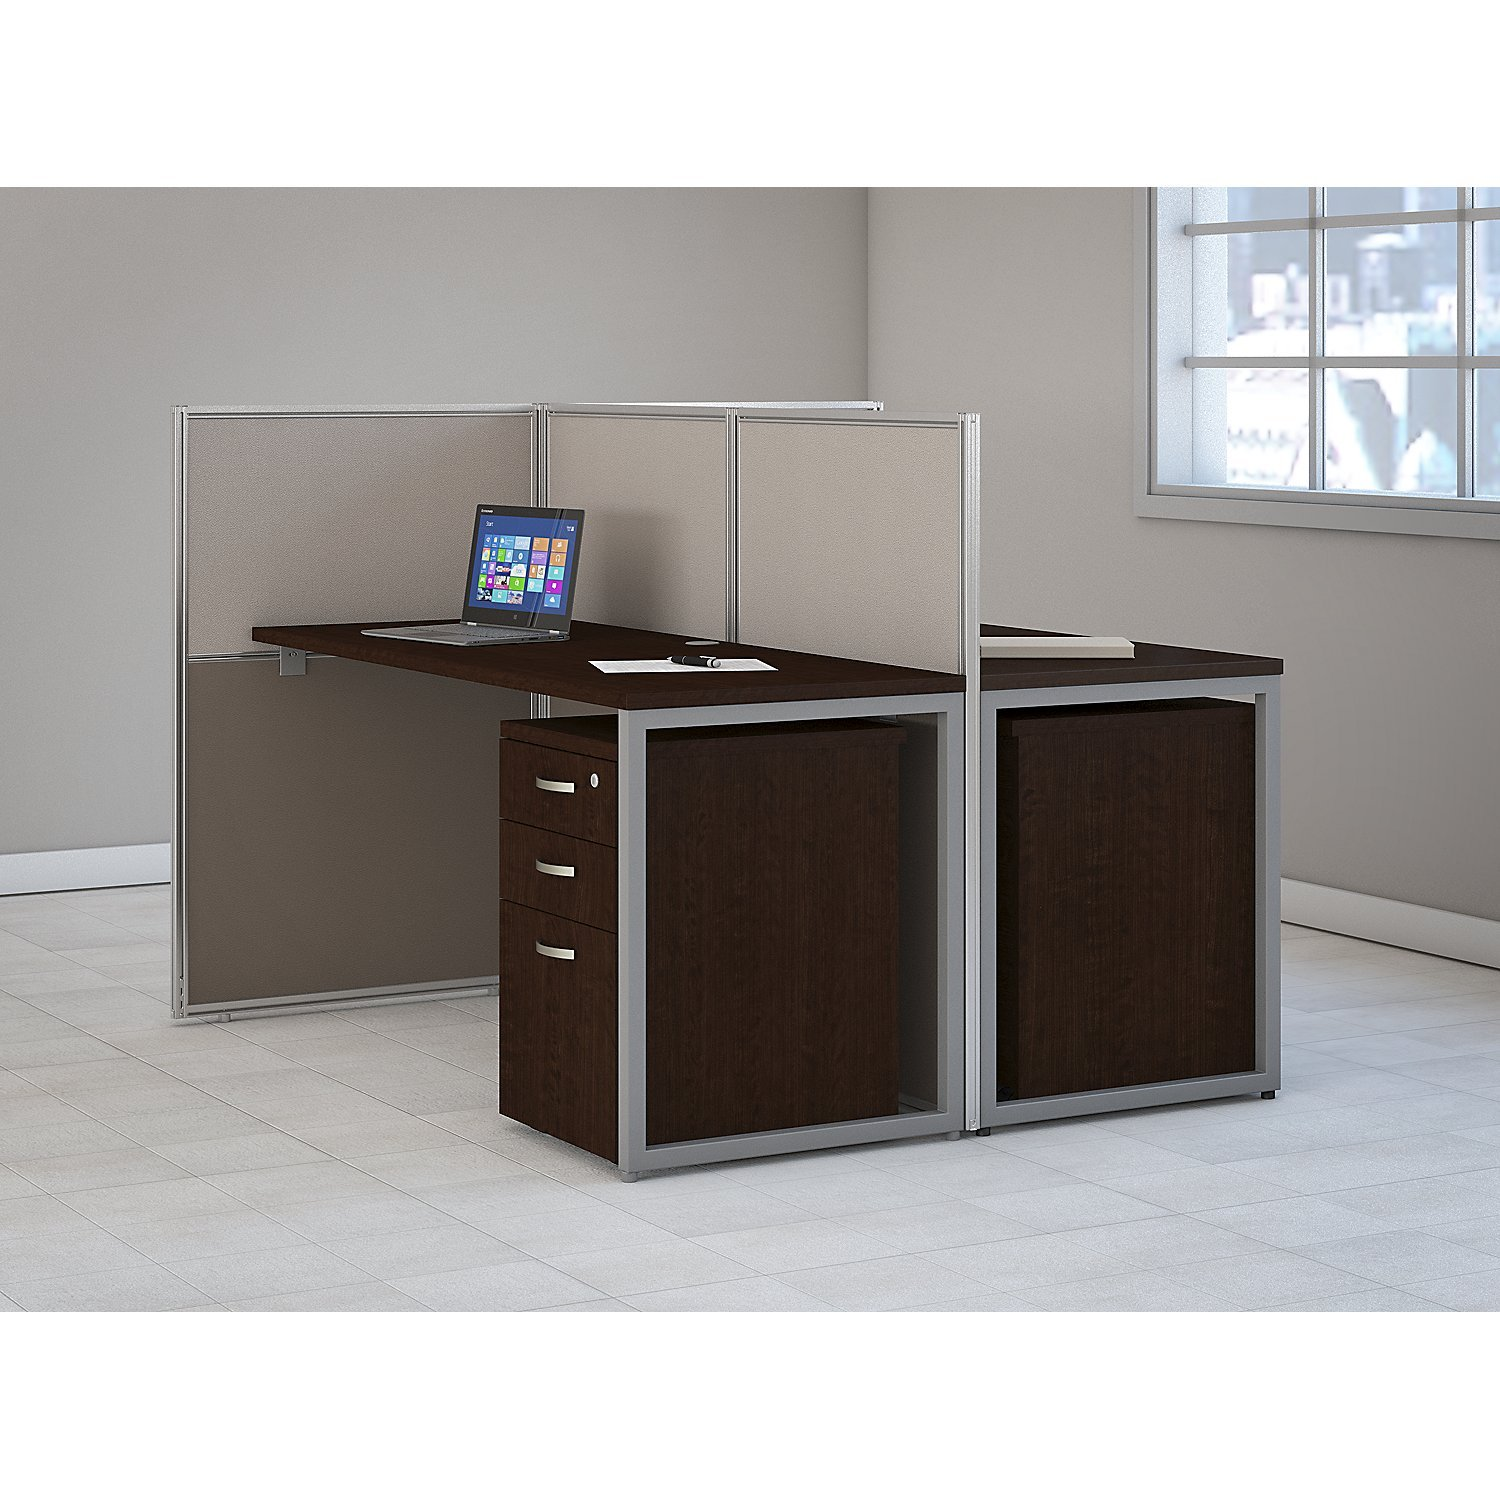 Easy Office 60W 2 Person Straight Desk Open Office with Two 3 Drawer Mobile Pedestals in Mocha Cherry